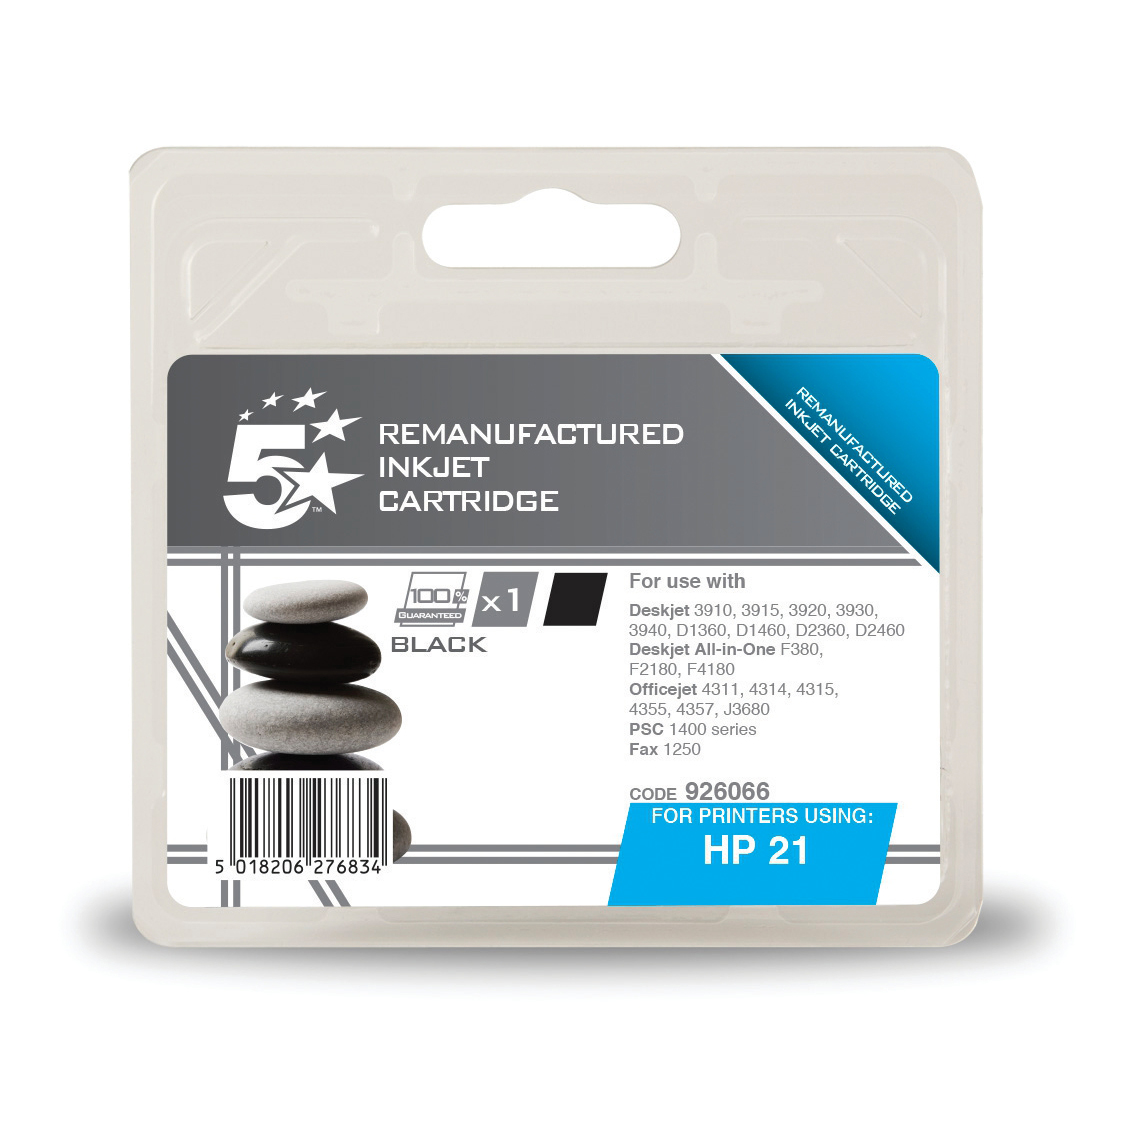 Printheads 5 Star Office Remanufactured Inkjet Cartridge Page Life 190pp 5ml Black HP No.21 C9351AE Alternative